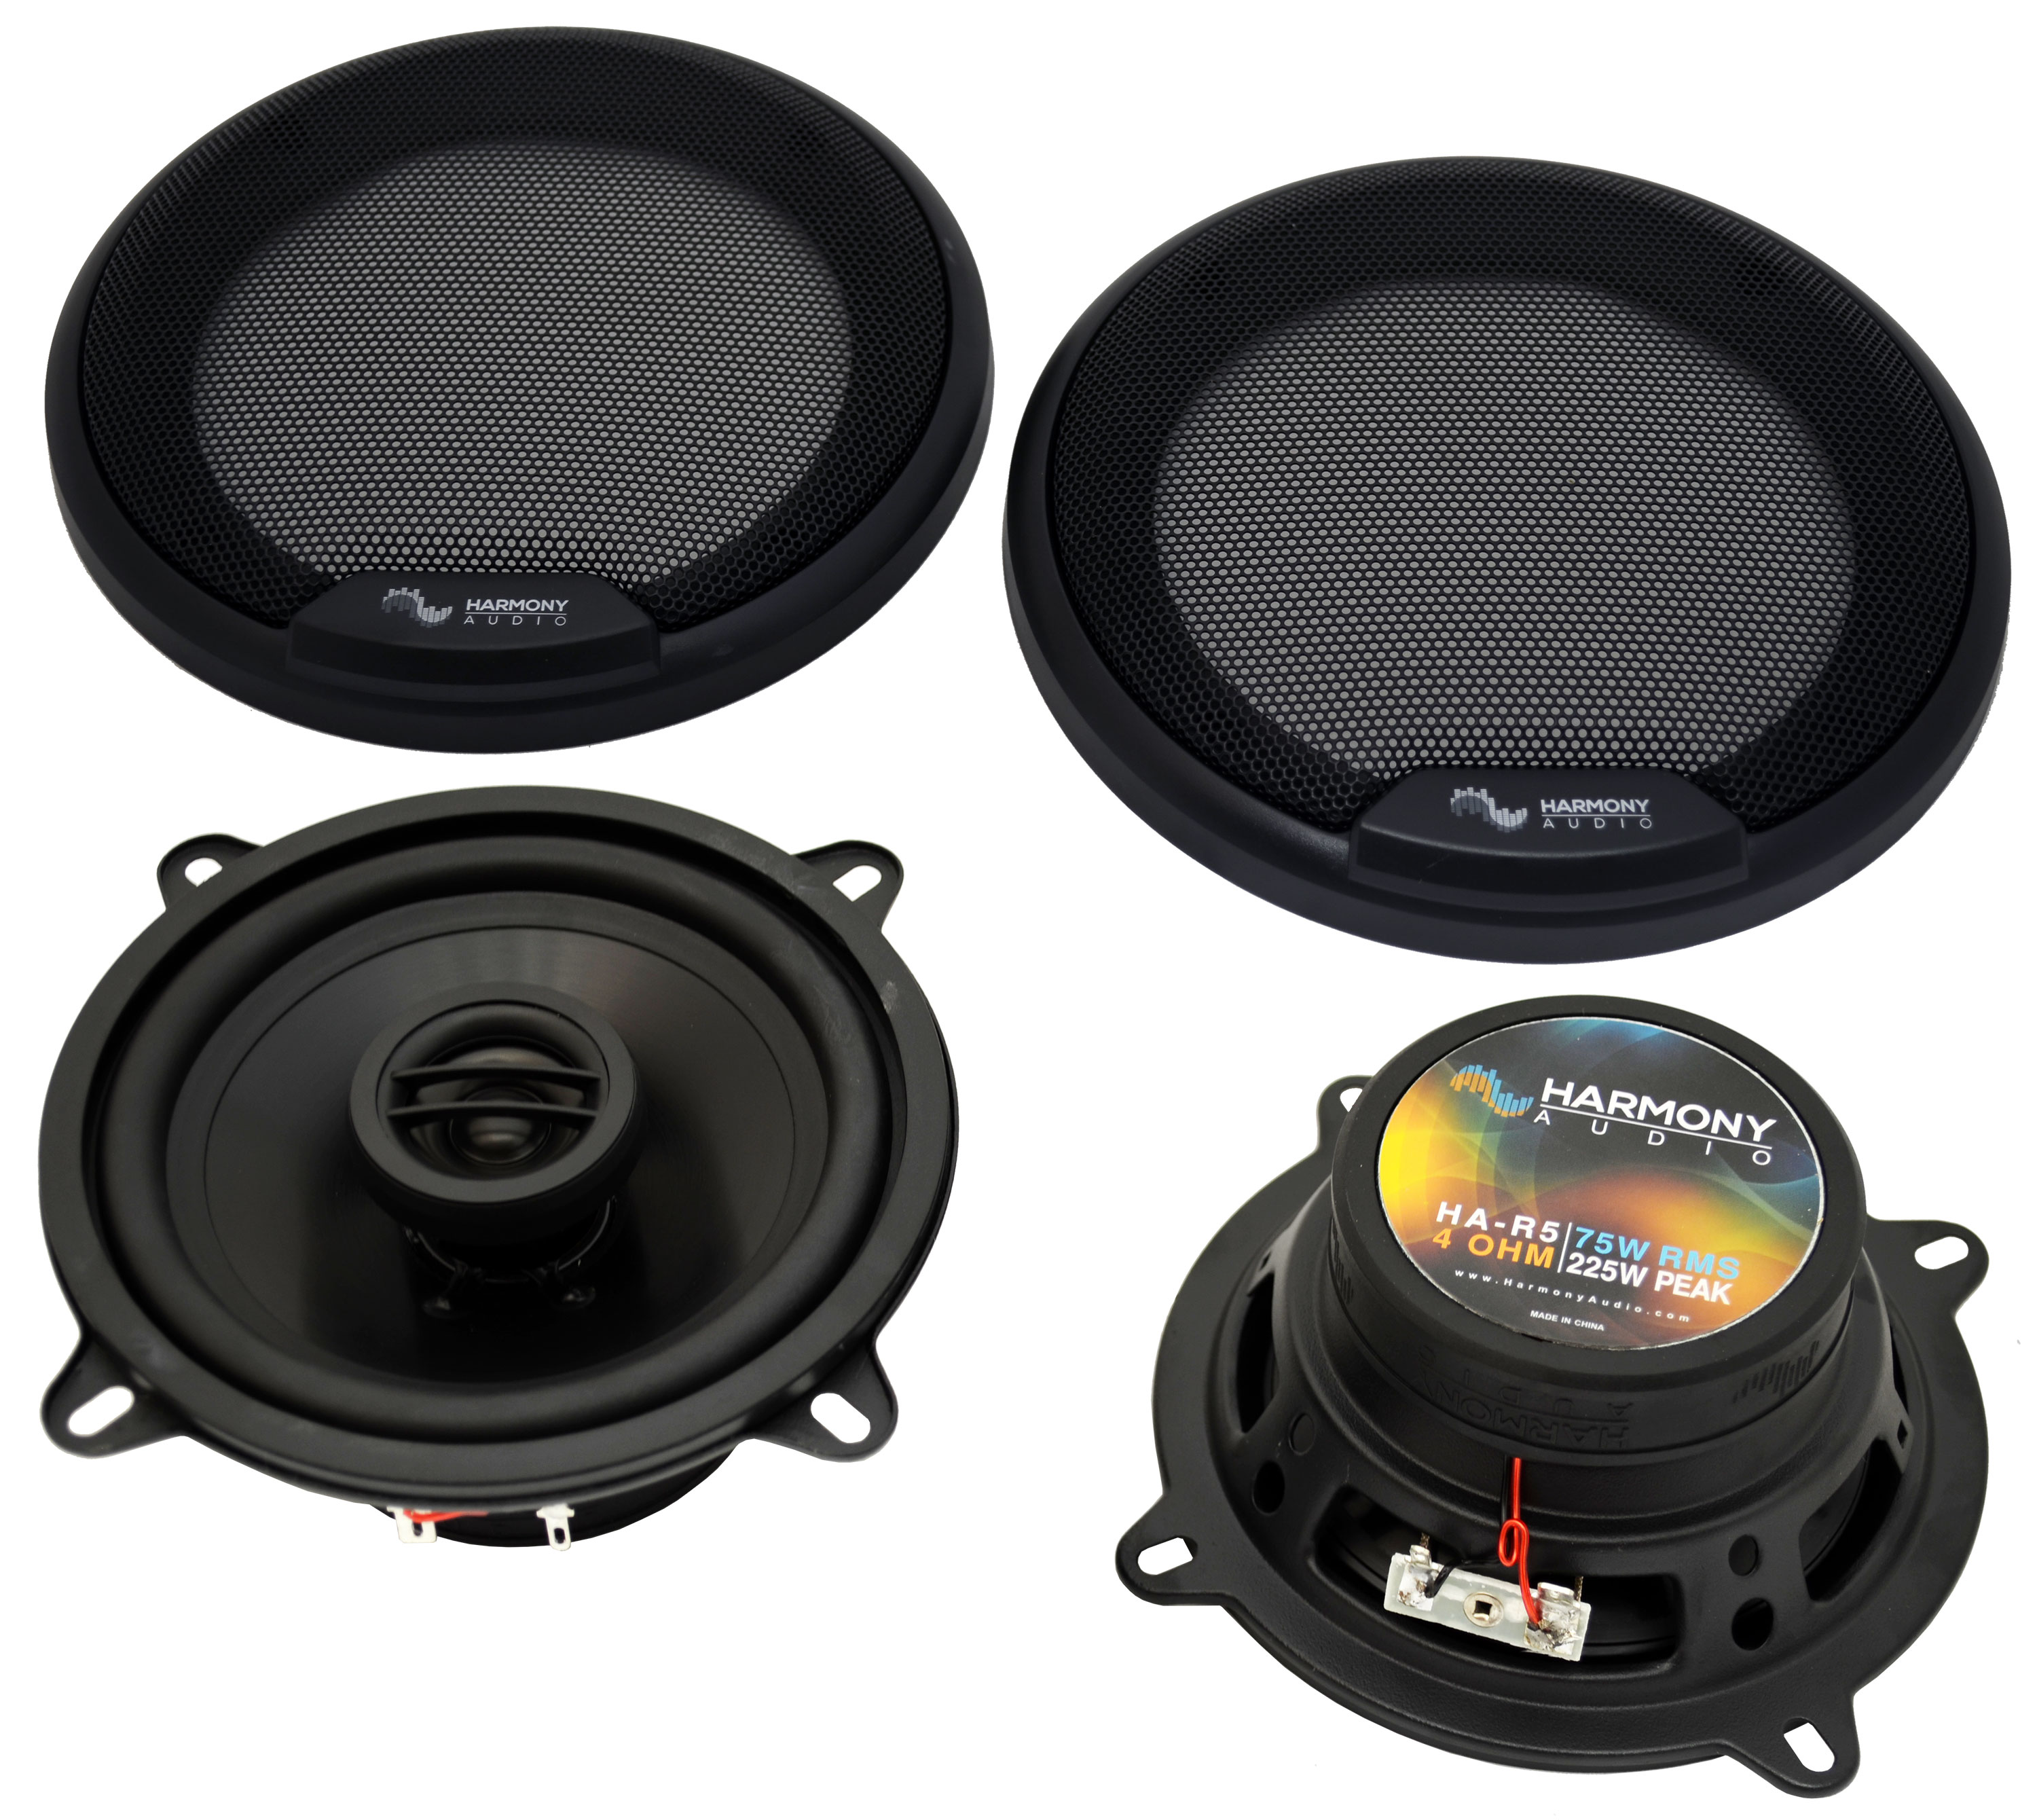 Fits BMW M5 2001-2010 Rear Deck Replacement Speaker Harmony HA-R5 Speakers New